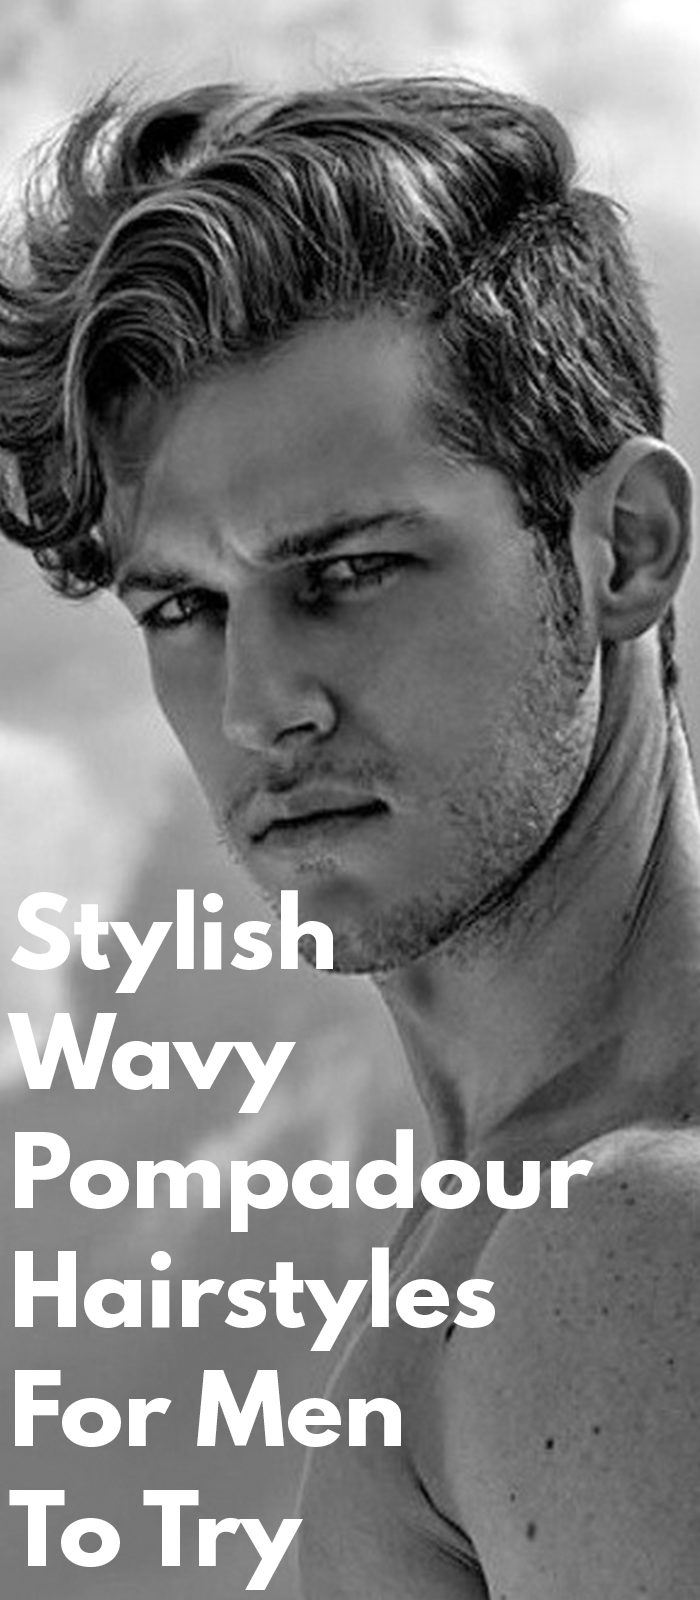 Stylish Wavy Pompadour Hairstyles For Men To Try